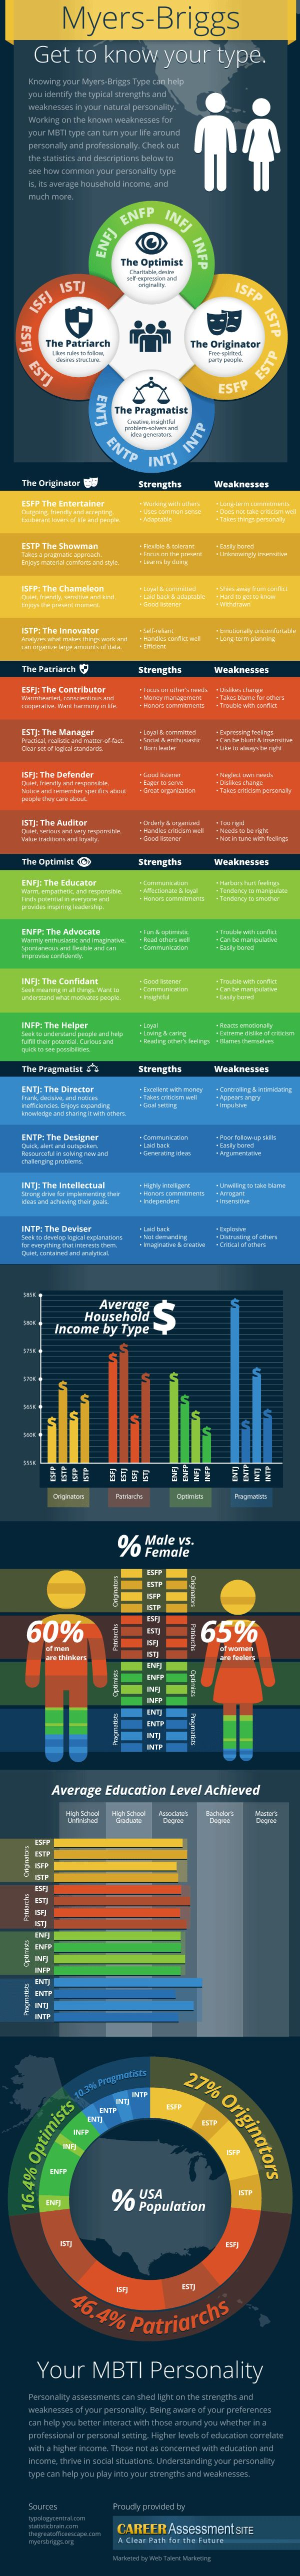 Can Your Personality Type Affect Your Income? | House of Beccaria~